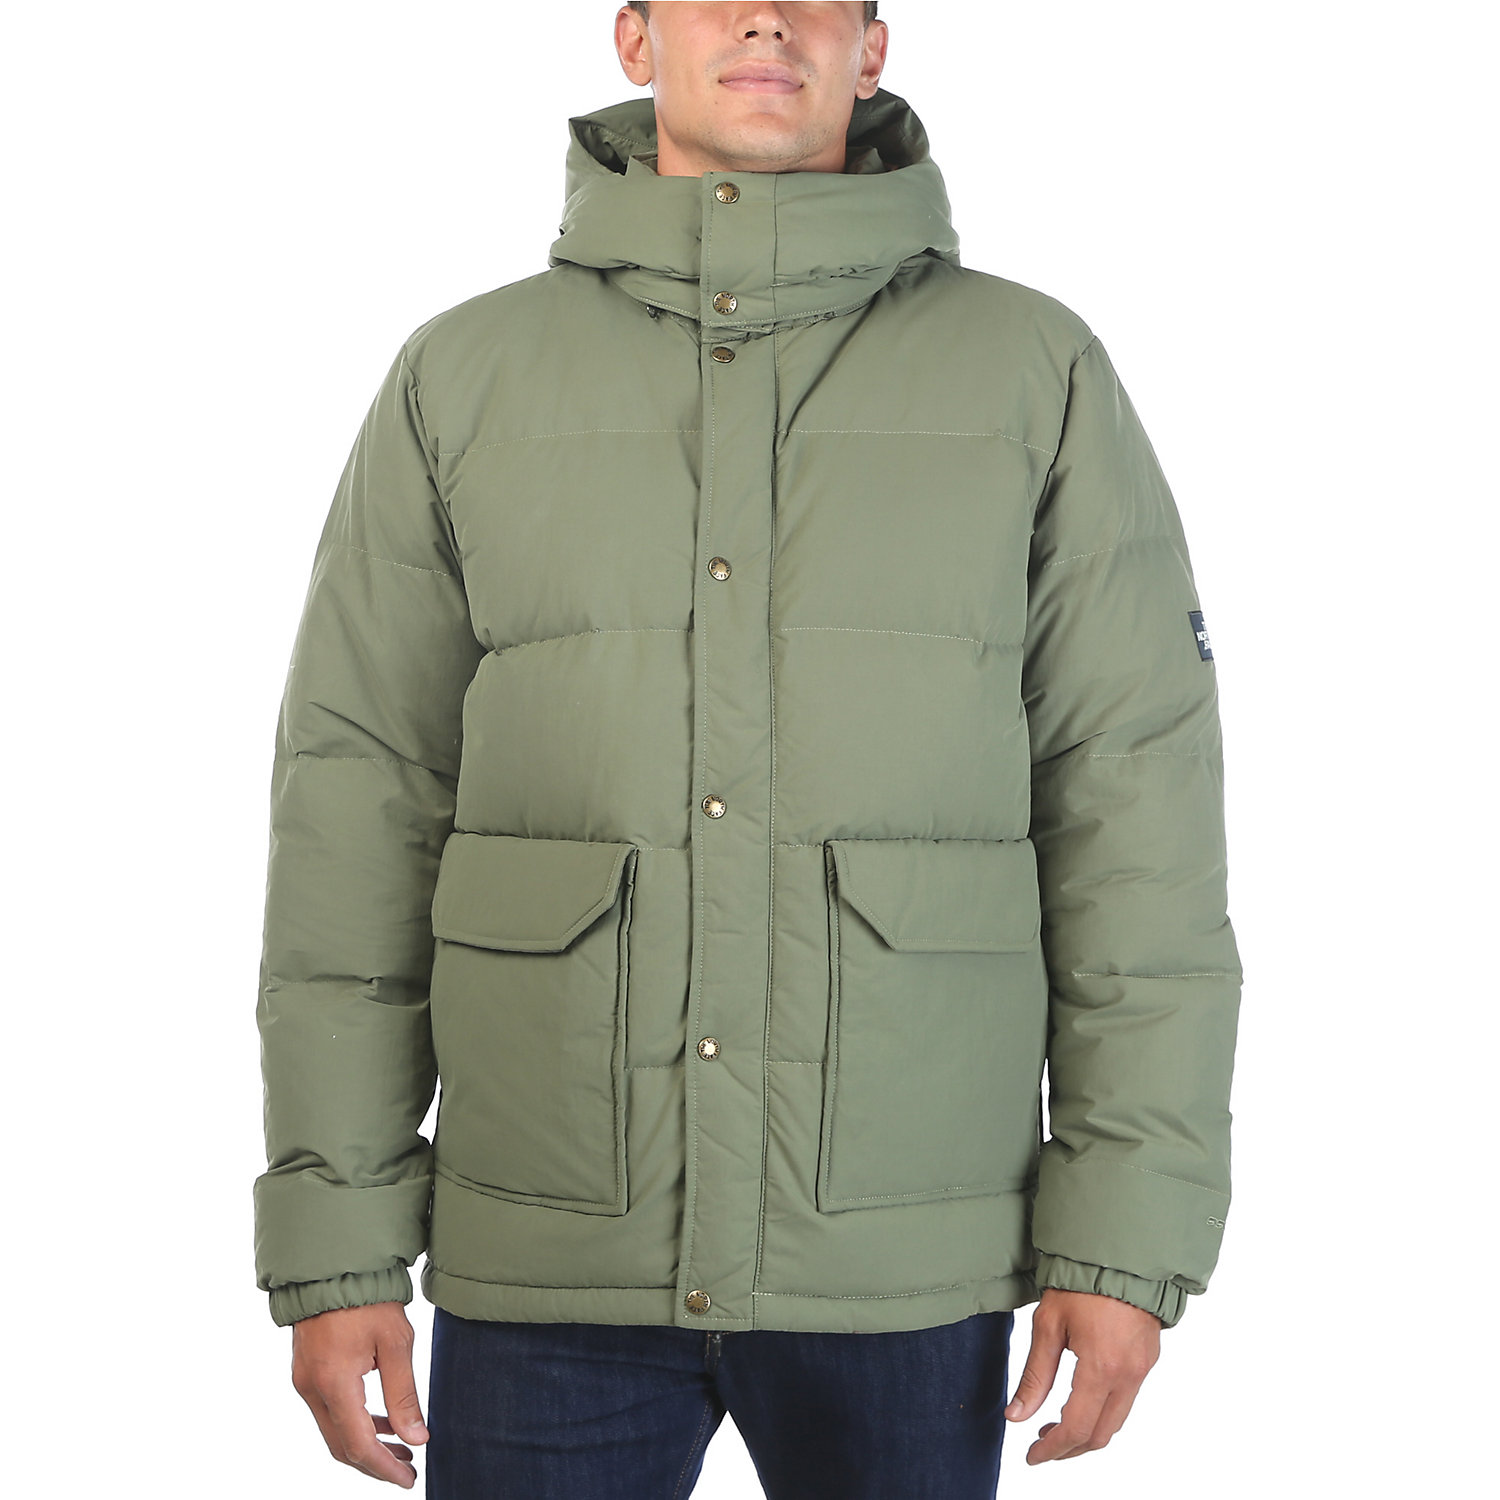 59cbf7d8c The North Face Men's Down Sierra 2.0 Jacket